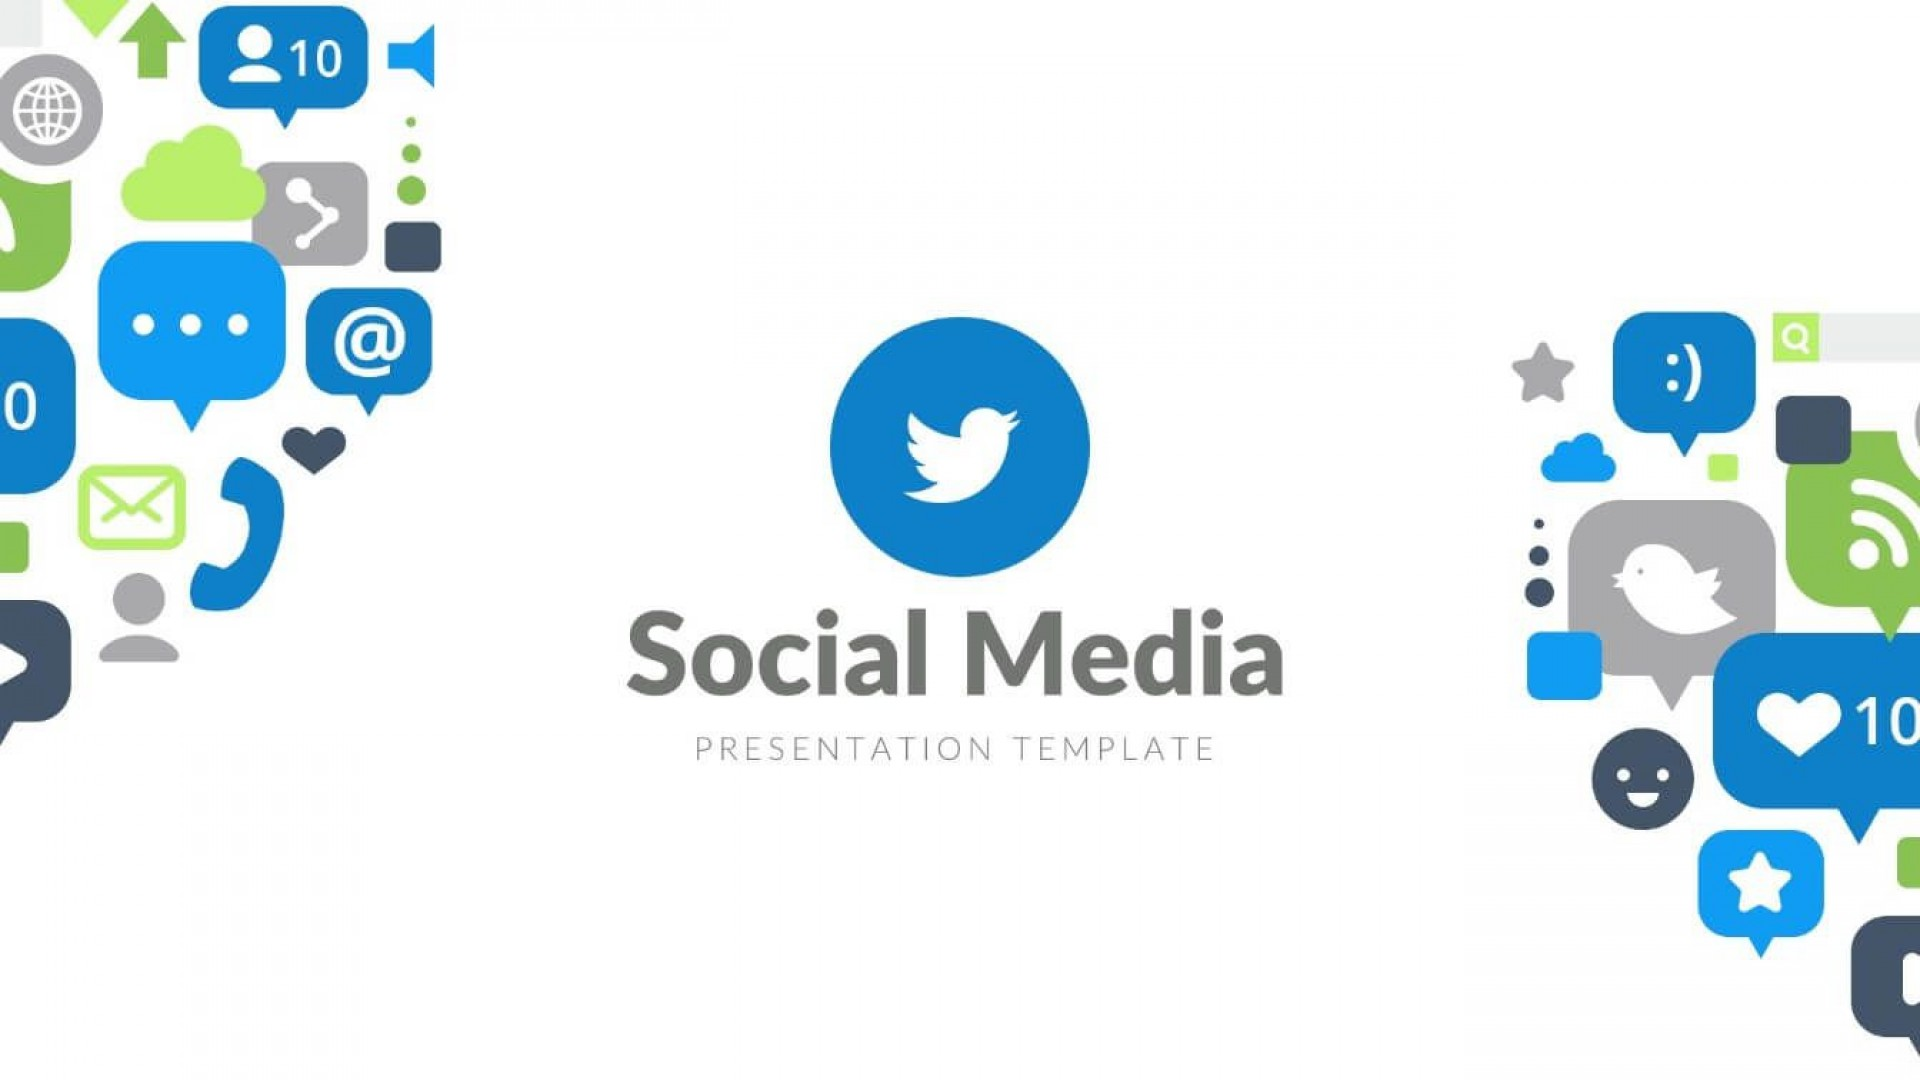 008 Rare Social Media Powerpoint Template Free Inspiration  Strategy Trend 2017 - Report1920